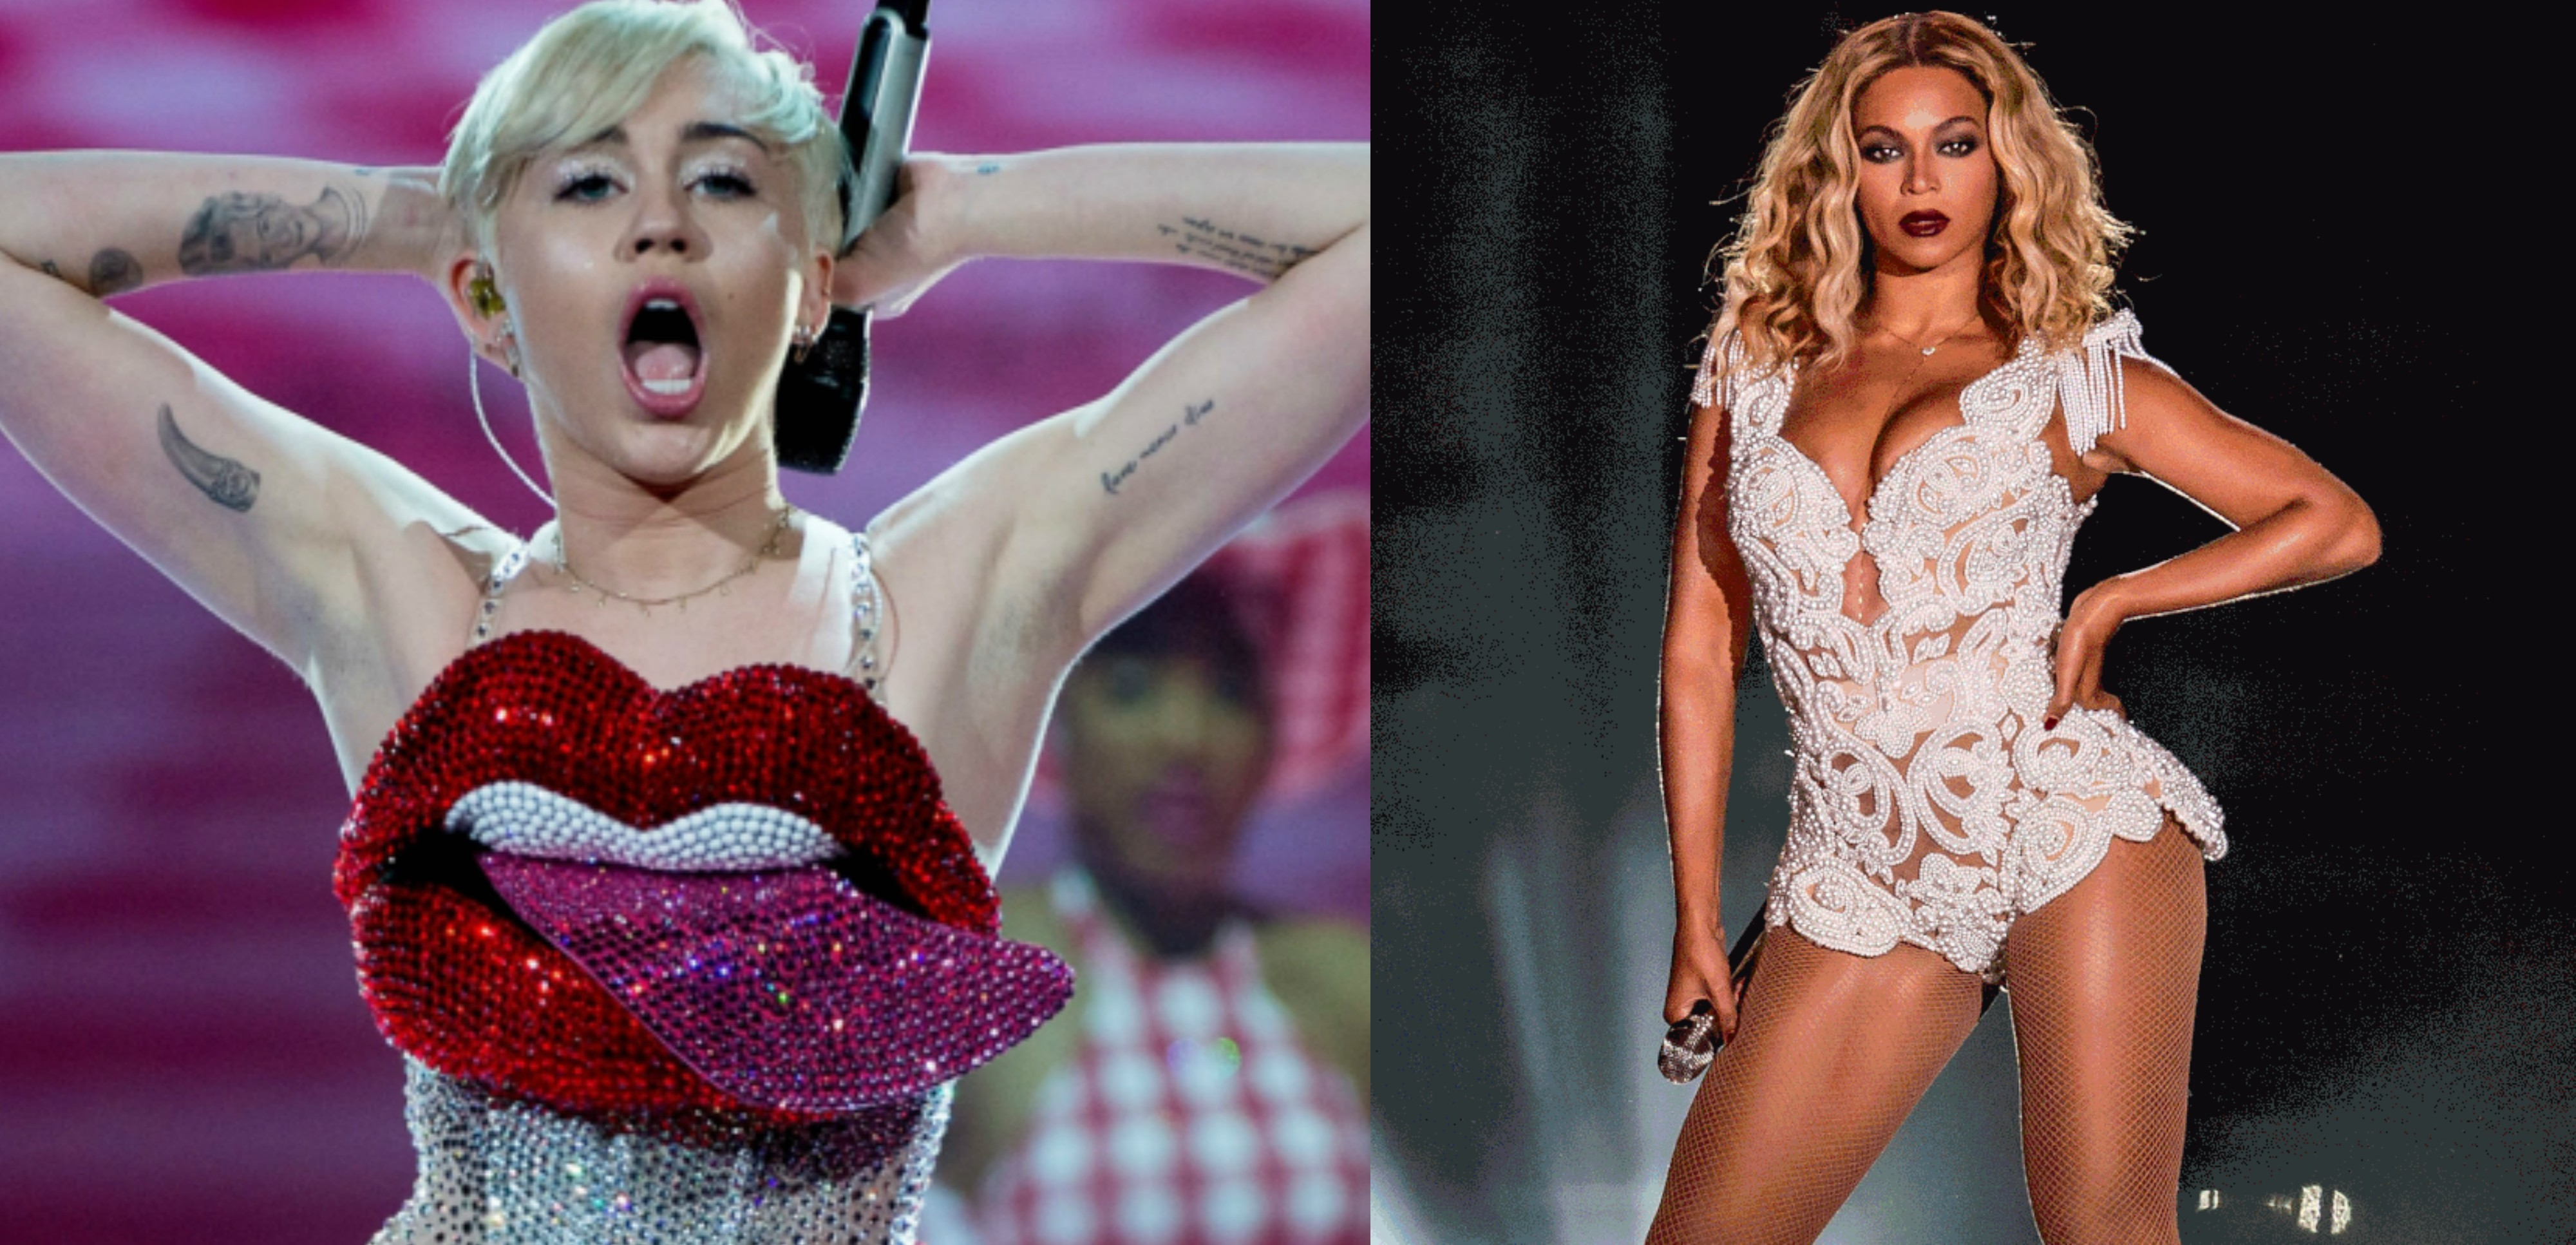 15 Hot Singers Who Like To Bare It All On Stage